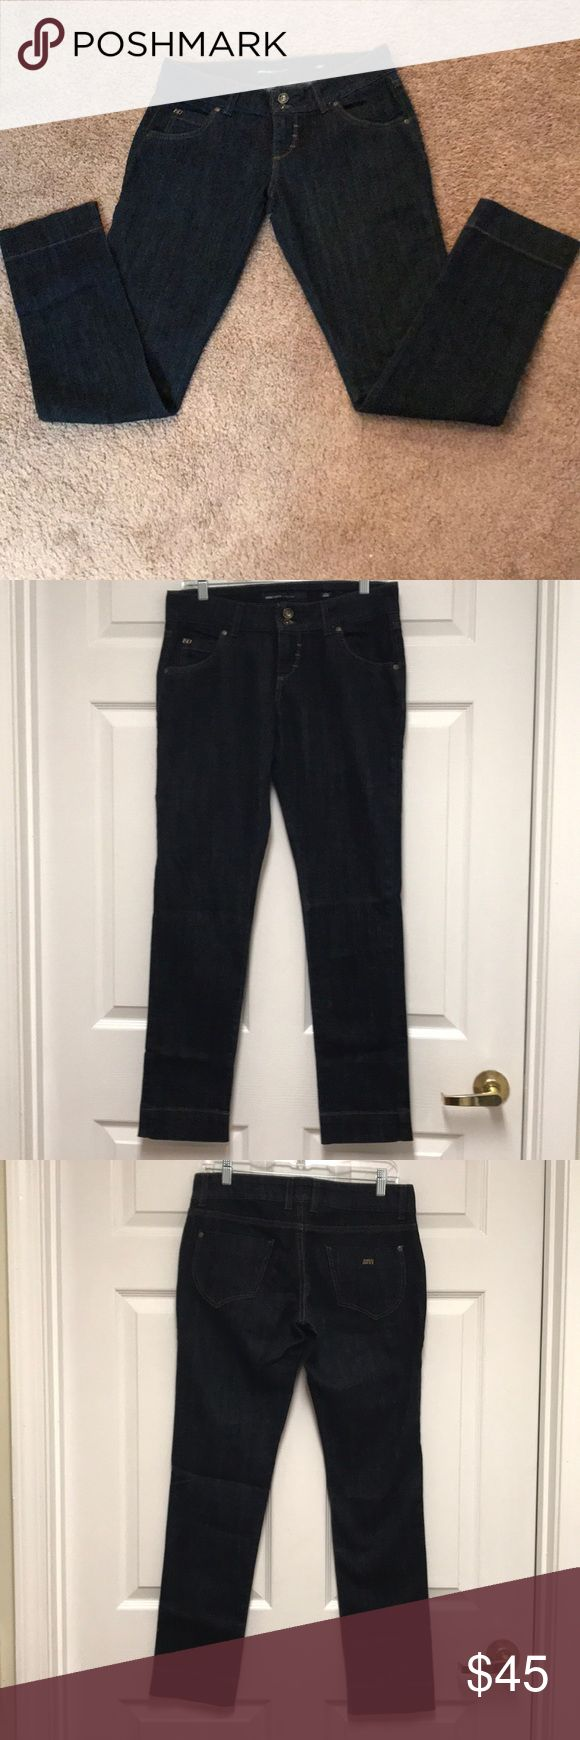 Miss Sixty Binky Jeans Pre-Owned Miss Sixty Binky Dark Wash Jeans Excellent Condition 30x32 99% Cotton 1%Spandex Miss Sixty Jeans Straight Leg